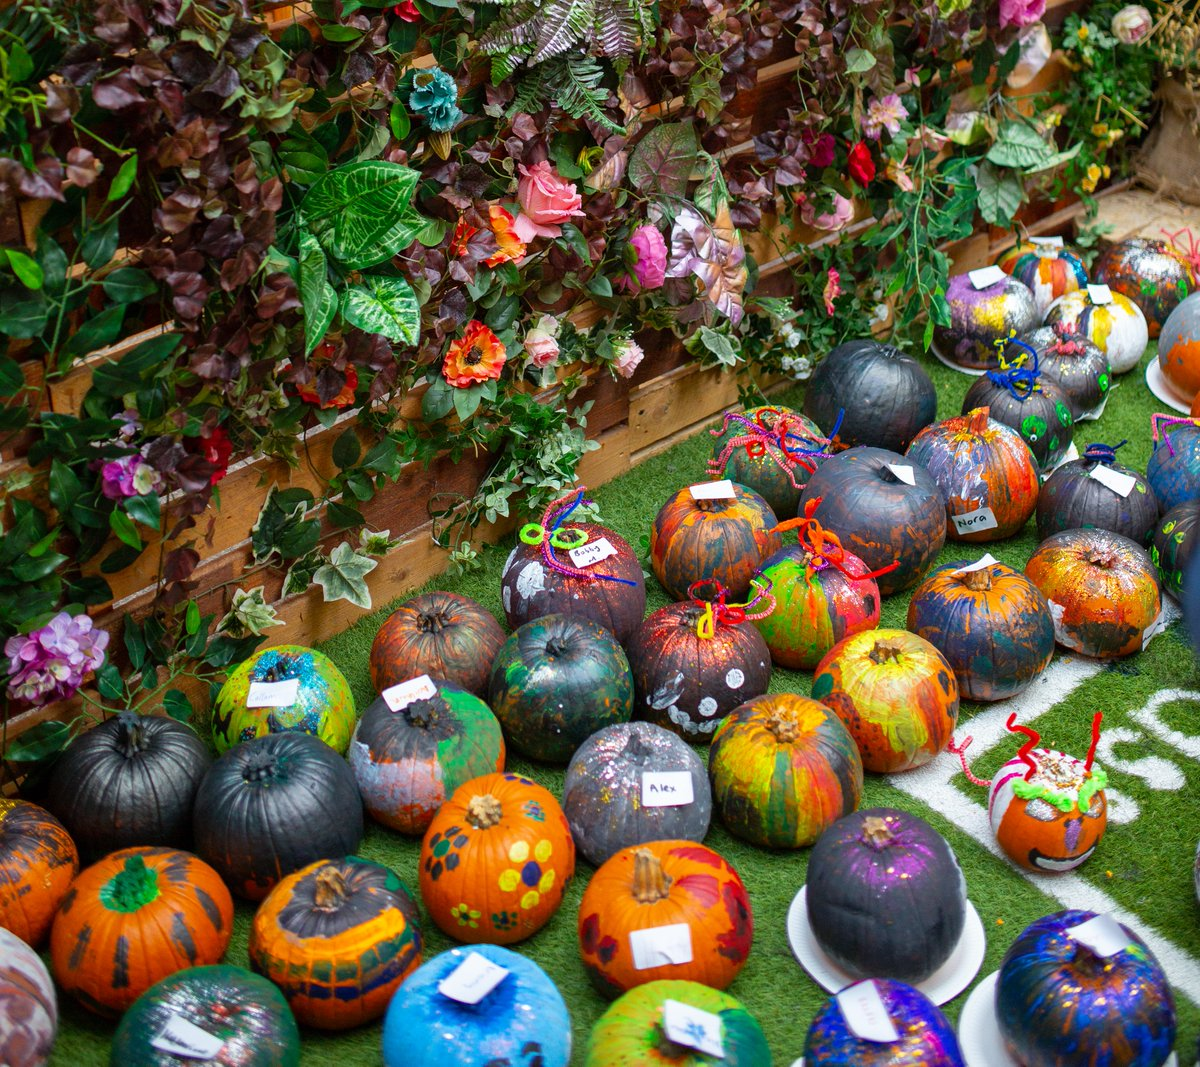 Only 2 days left until our Pumpkin ball, have you decided how you're going to decorate your pumpkin? 🎃  We love looking back at your fang-tastic creations from last year. #vsqhalloween #pumpkinball